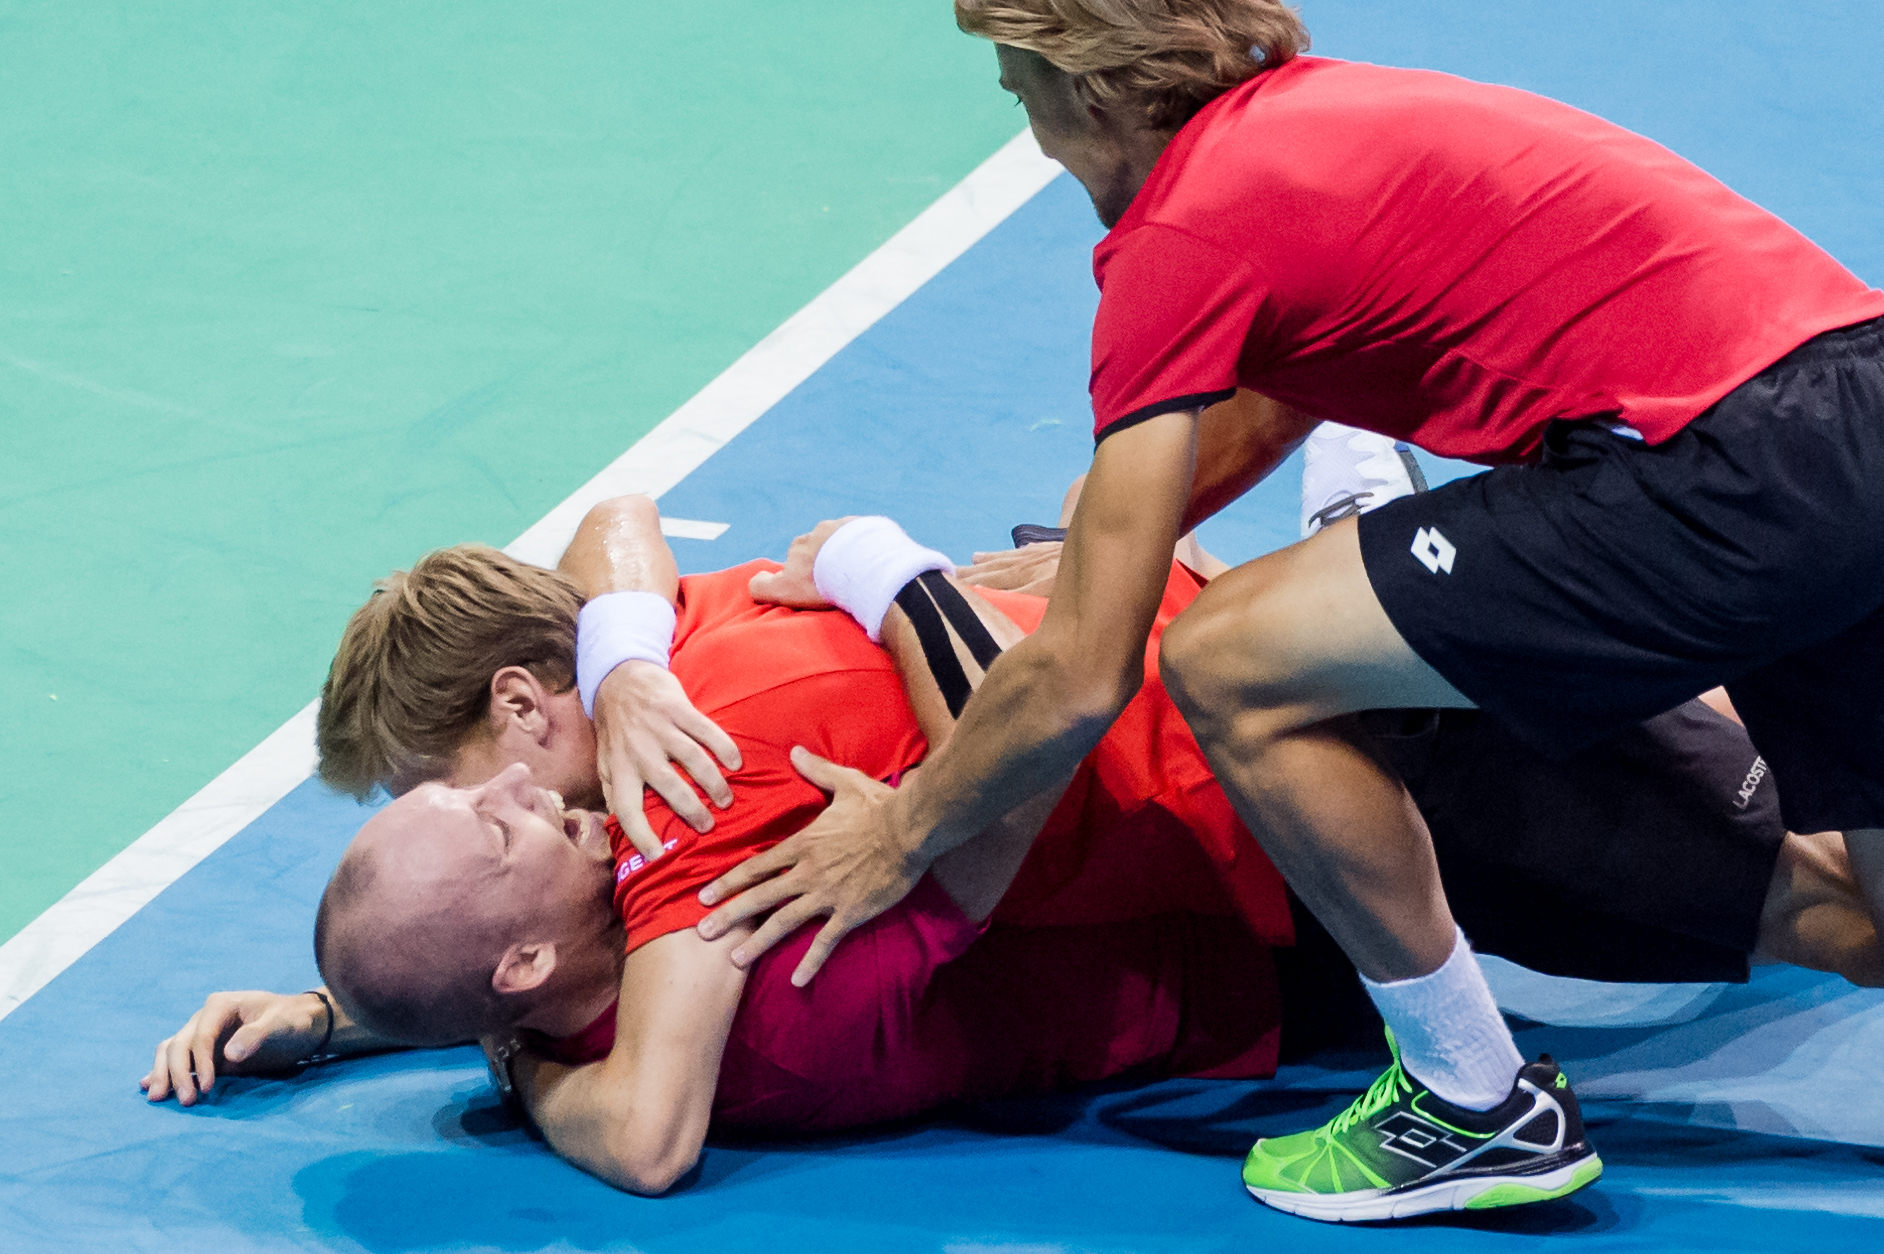 Belgium's Steve Darcis celebrates after winning against Argentina's Federico Delbonis during the last singles match at the Davis Cup World Group semifinals between Belgium and Argentina in Brussels, Sunday, Sept. 20, 2015. Belgium qualifies for the Davis